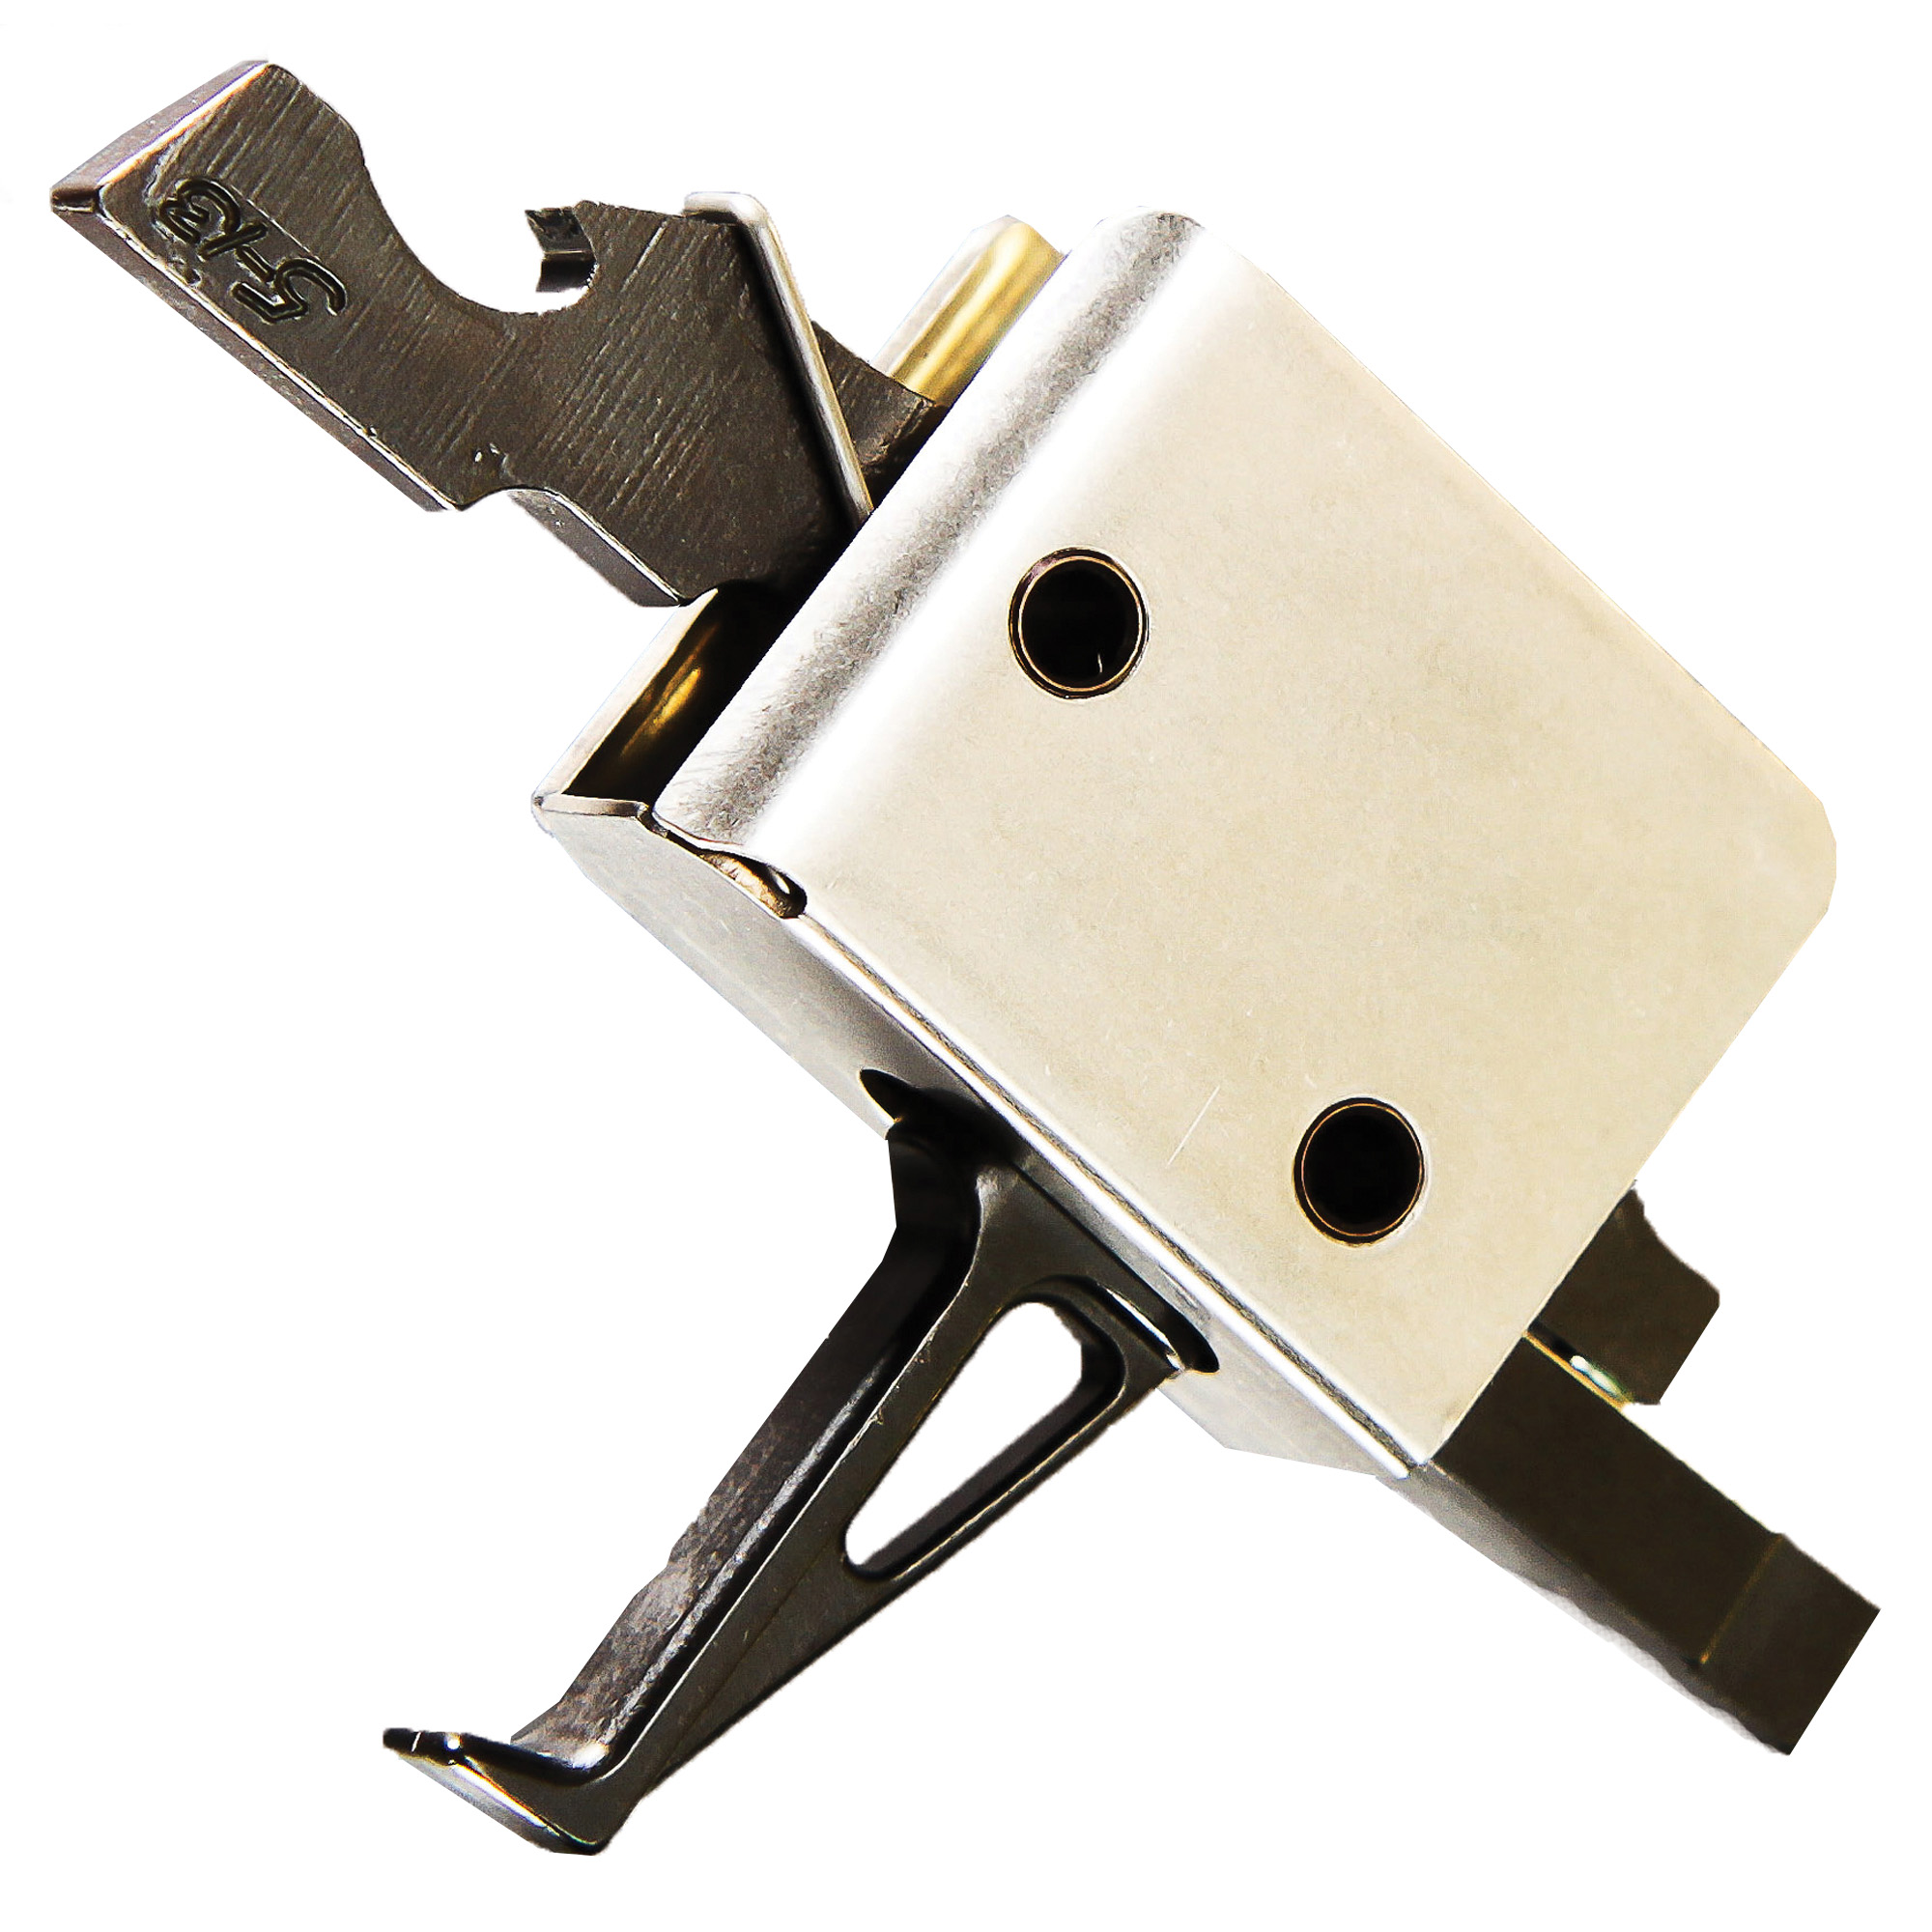 CMC AR-15/AR-10 Drop-In Single Stage Match Grade 2.5 lb Flat Trigger, Small Pin